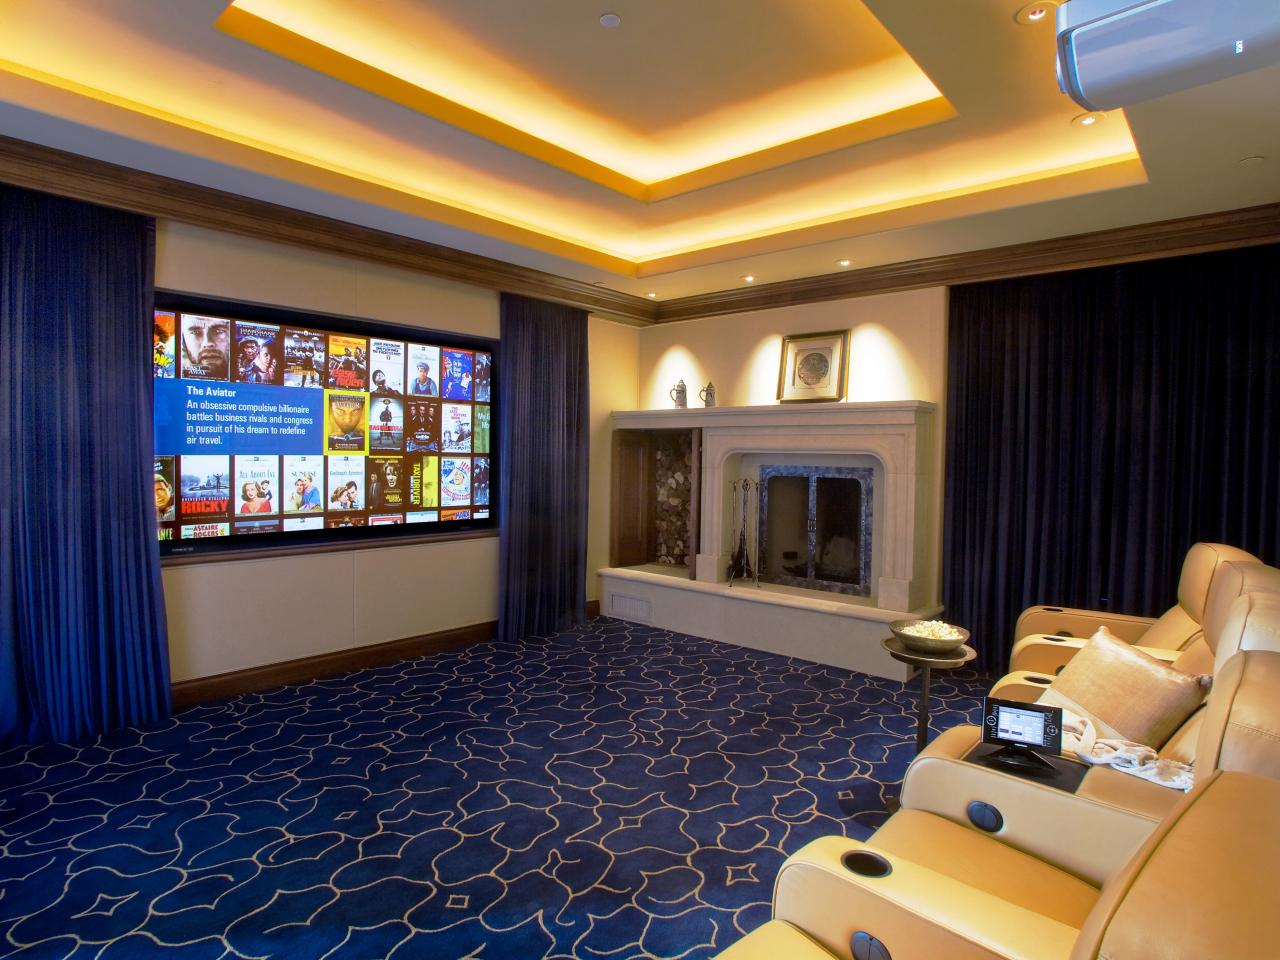 Designing A Home Theater? Donu0027t Forget The Window Blinds